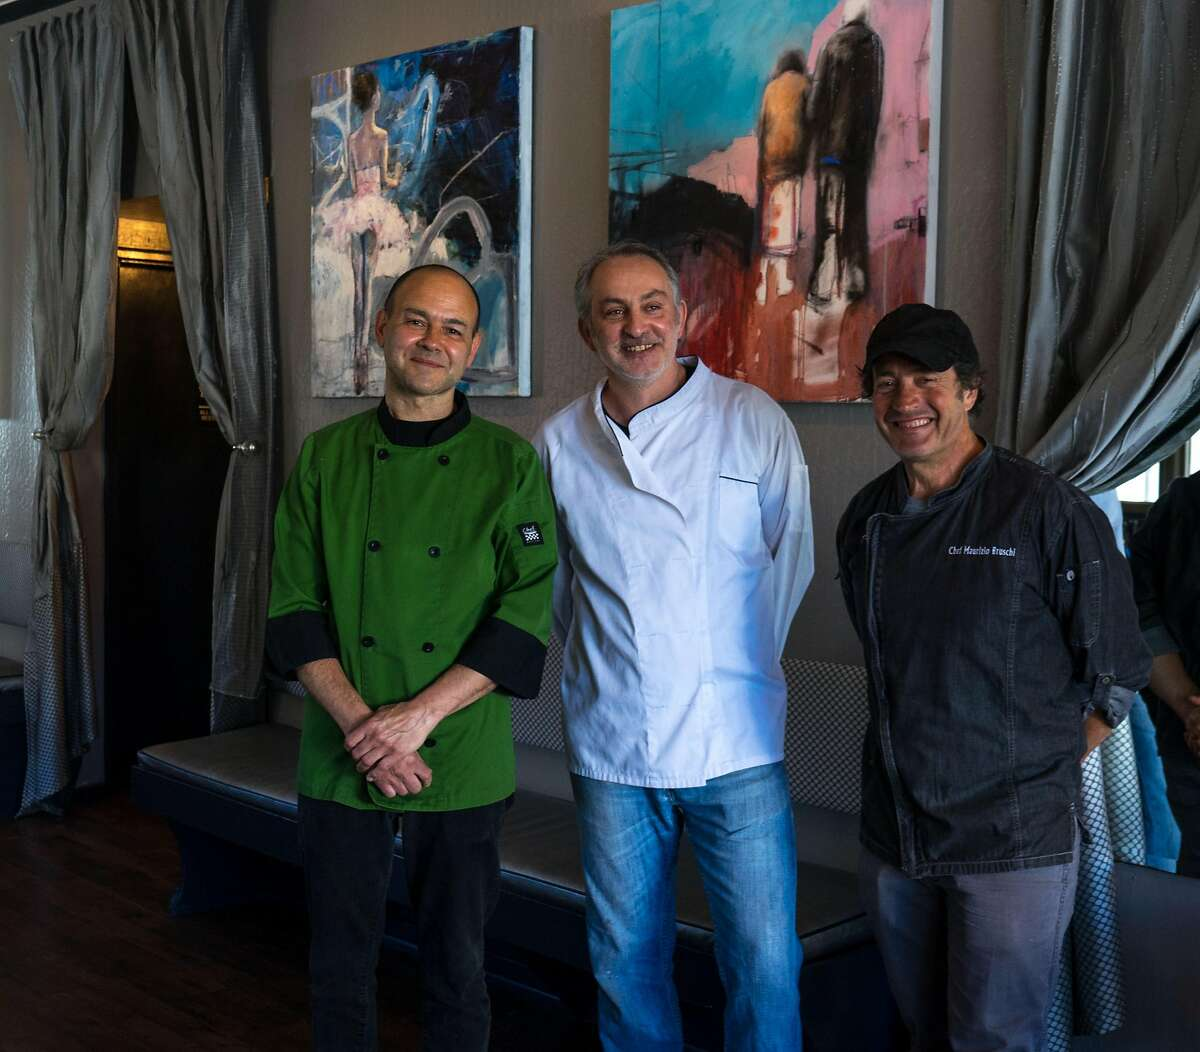 Serafina opened last week in North Beach for takeout. The team includes chef Umberto Cannarsa (left) and co-owners�Giuseppe Terminiello and�Maurizio Bruschi.